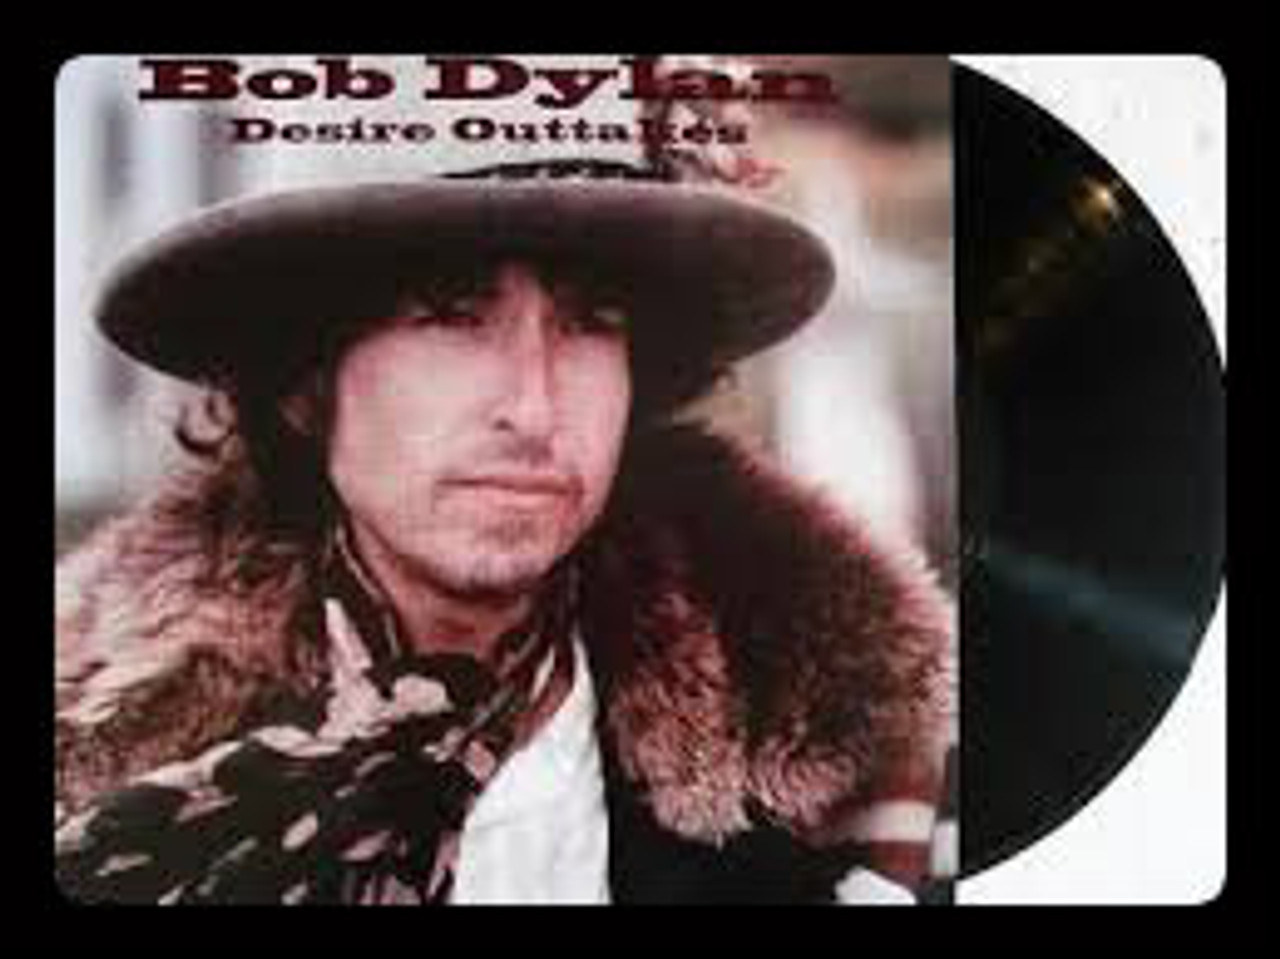 DESIRE OUTTAKES, Bob Dylan - EU Import LP on Colored Vinyl